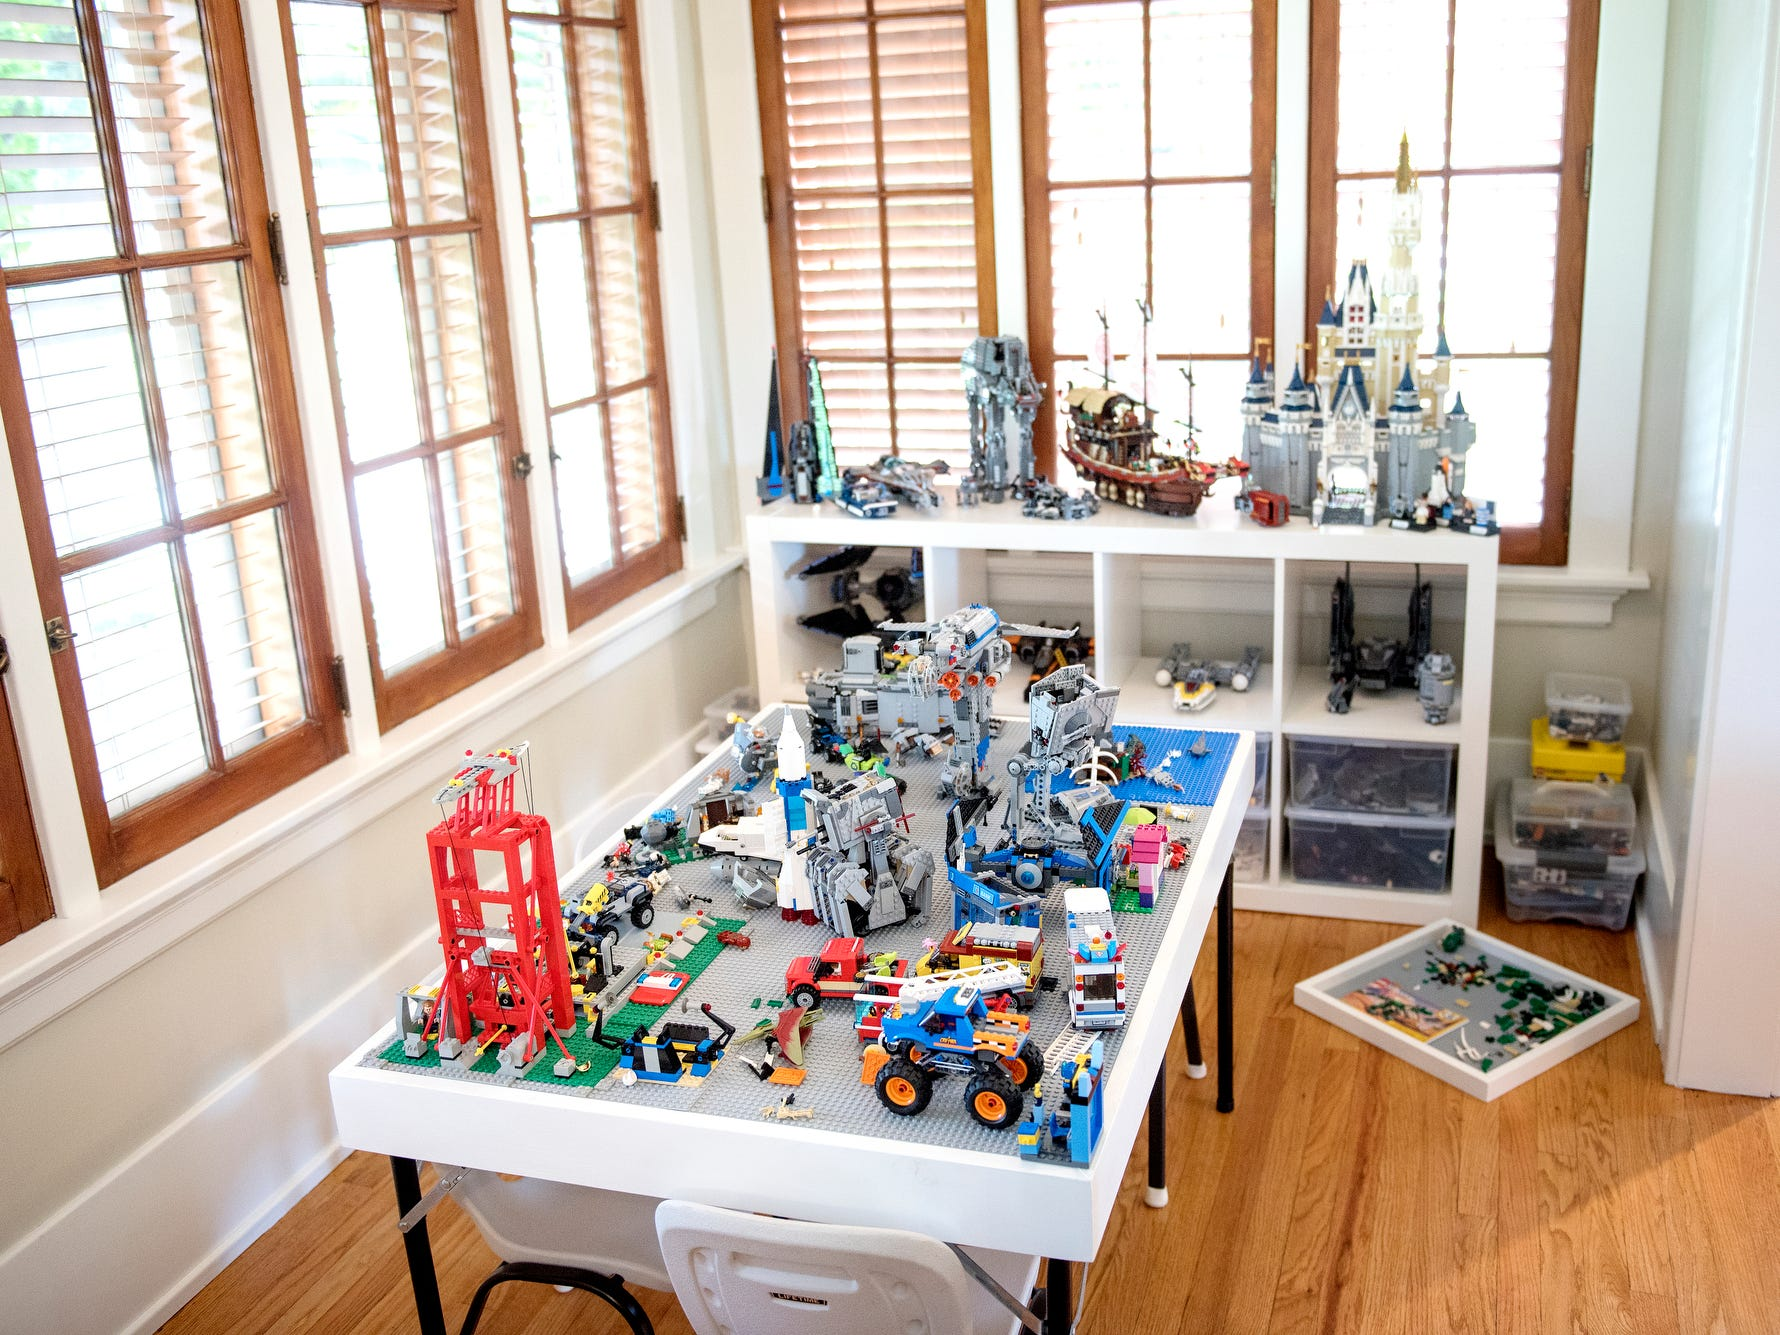 Originally a music room, the Purchases converted it into a LEGO room inside their Moores River Drive home on Thursday, Sept. 5, 2018, Lansing. The home is one of five homes that will be featured on the Sept. 16 Lansing Area Historical Home Tour.